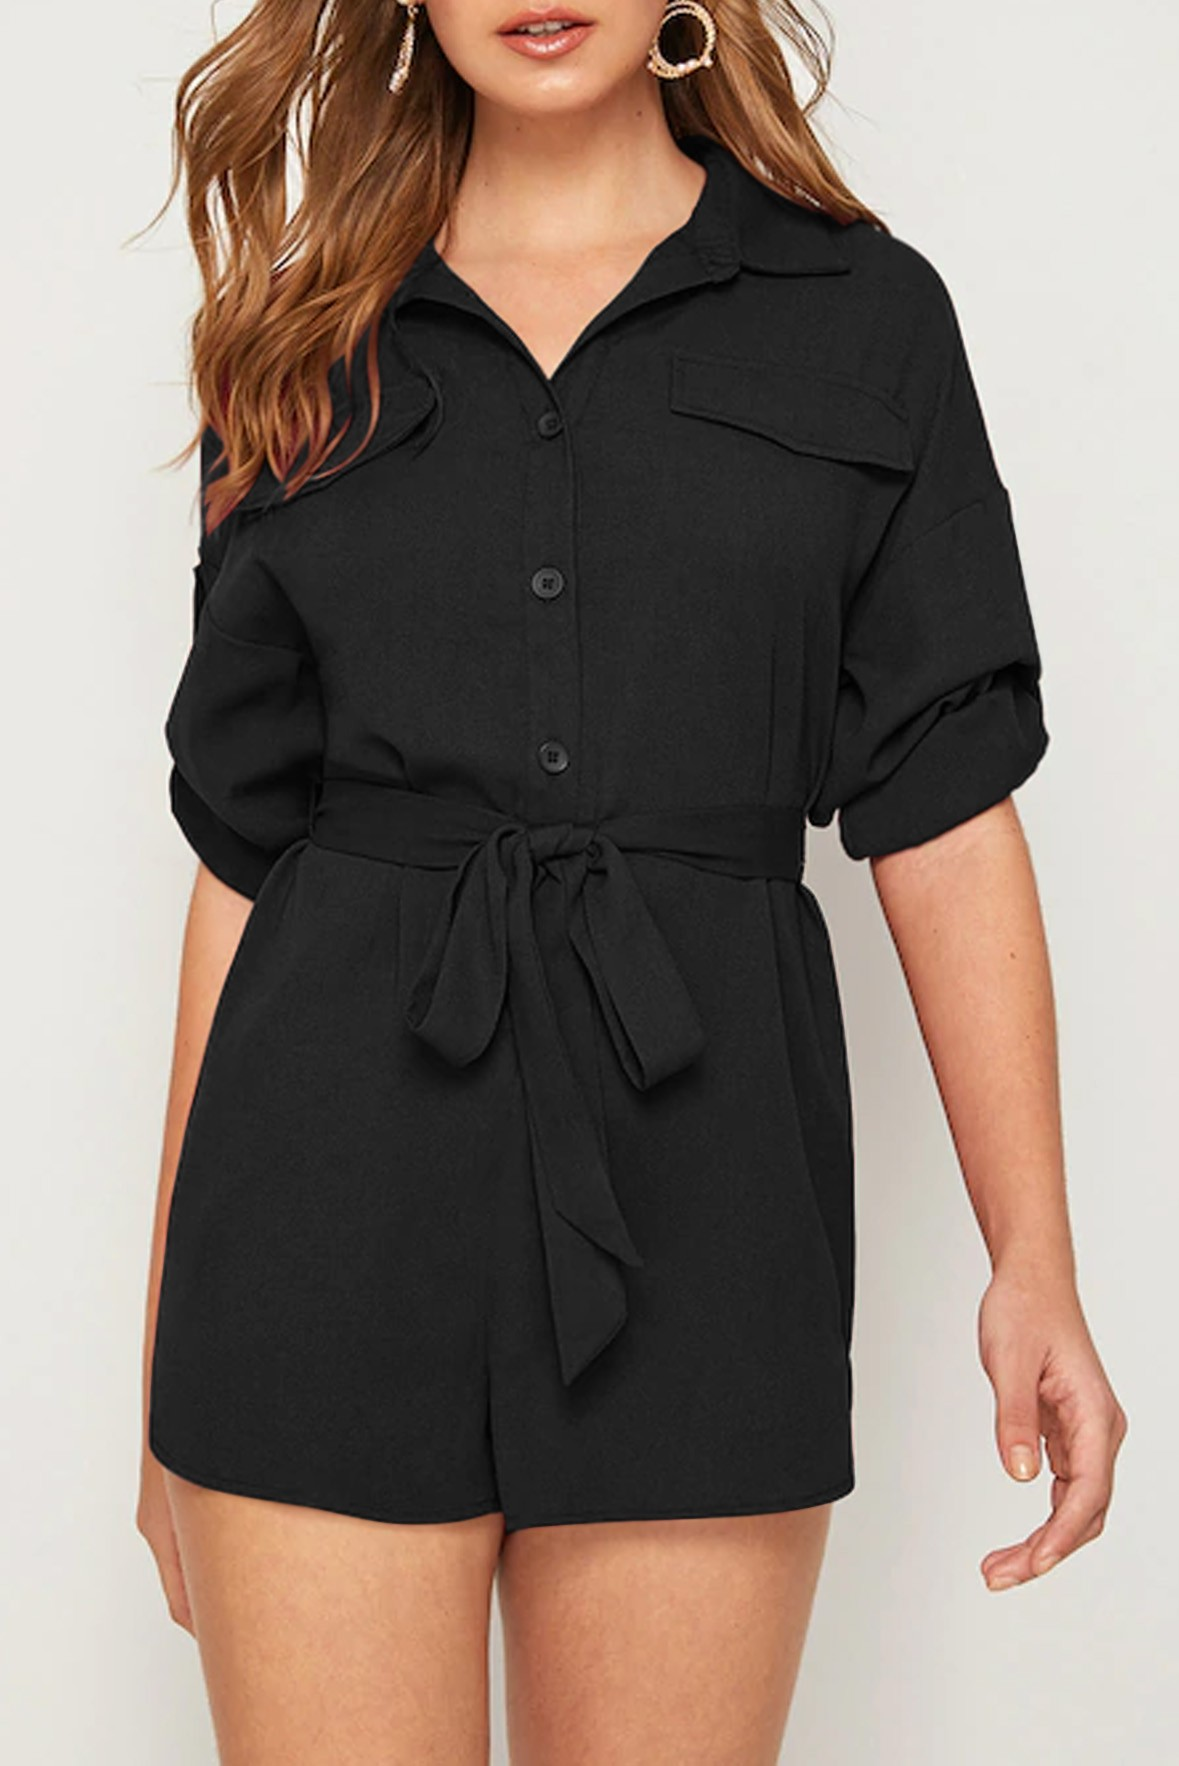 Roll Tab Sleeve Button Front Belted Black Romper